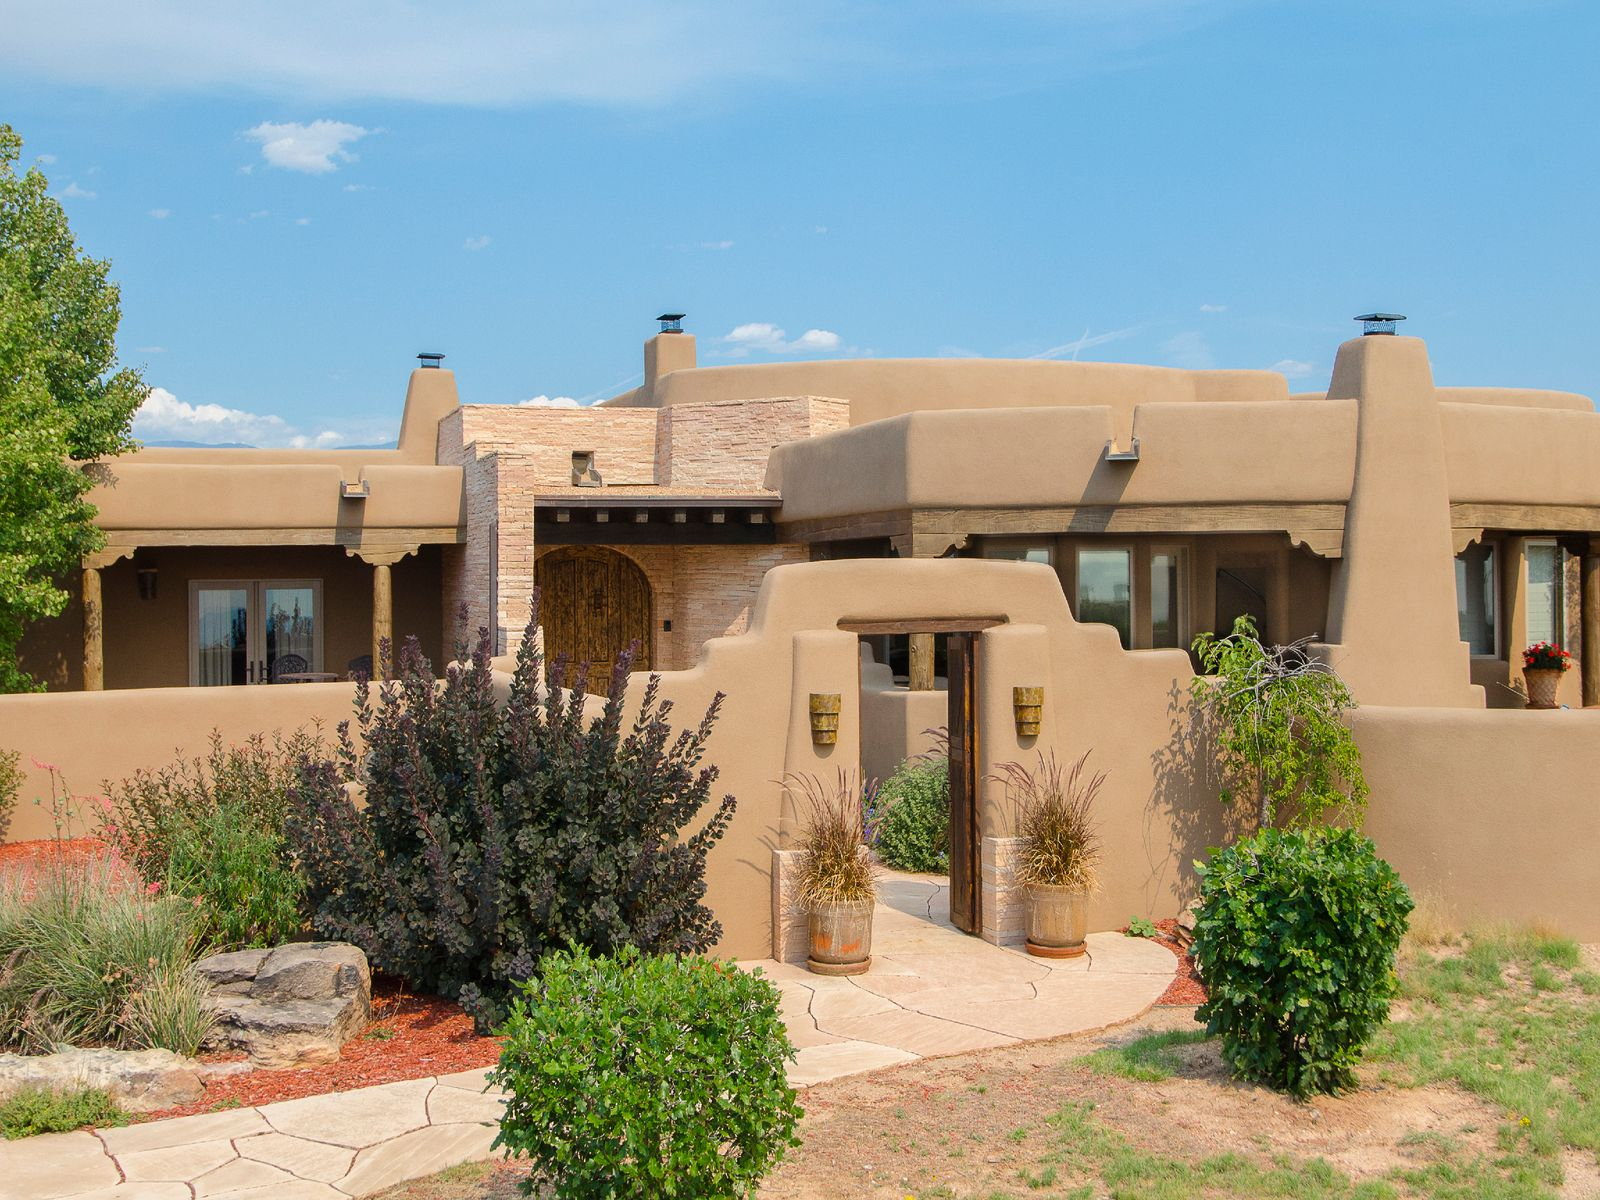 13 Indigo Court, Santa Fe NM Single Family Home - Santa Fe Real Estate